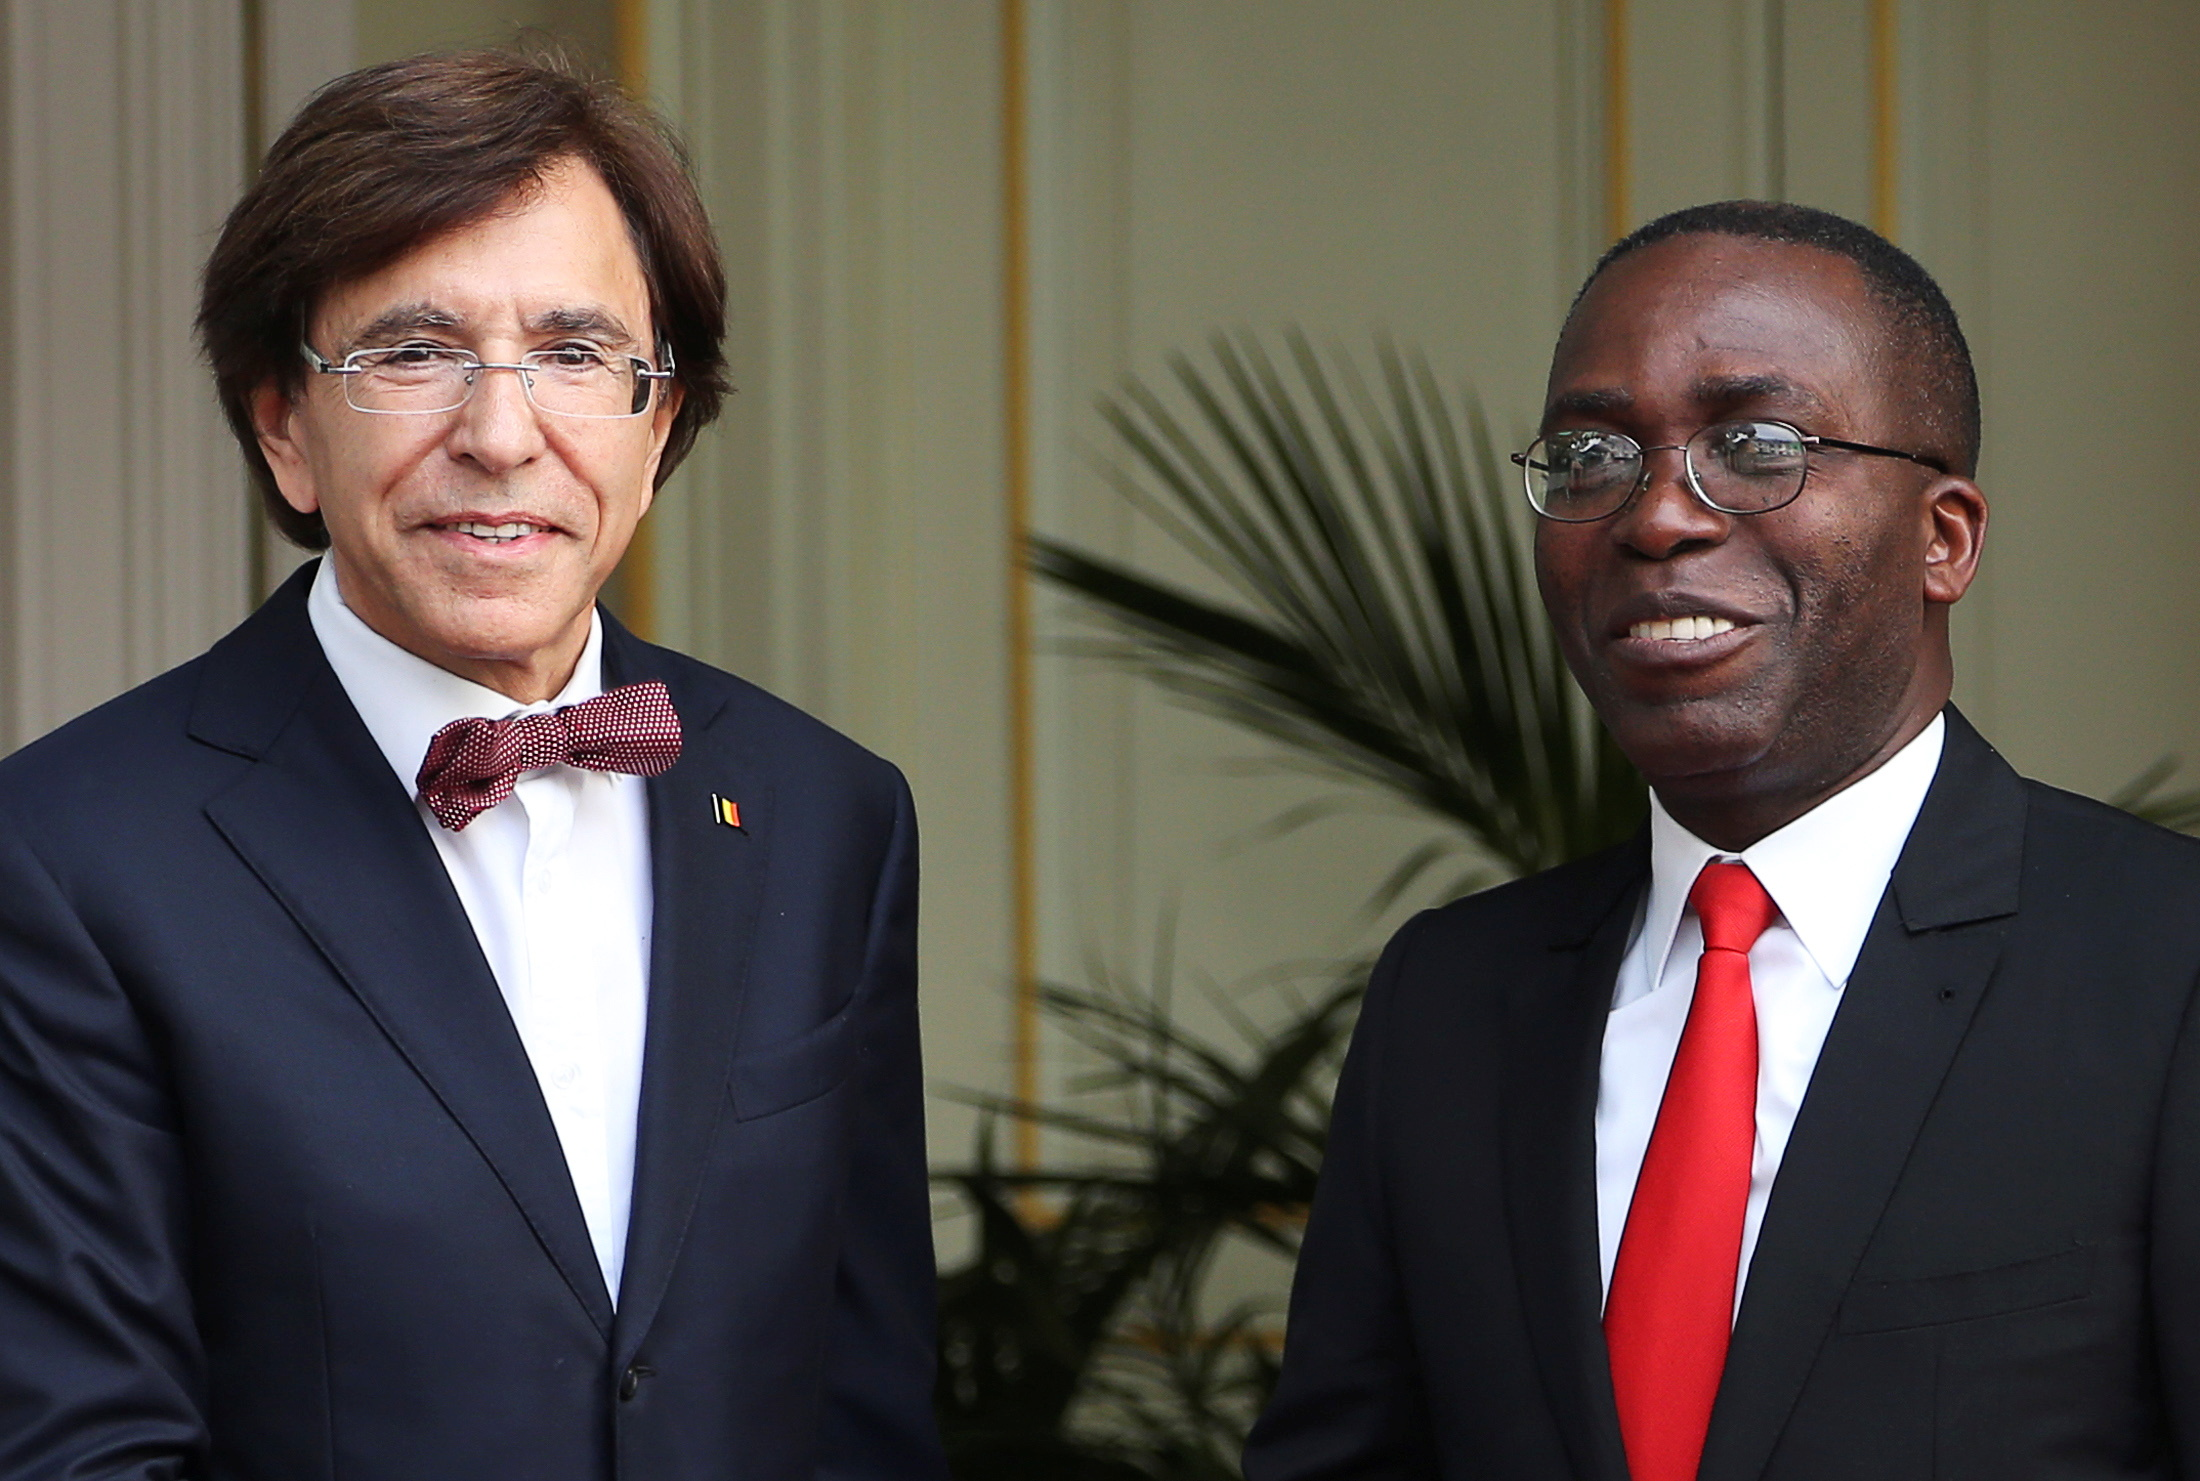 Congo's former prime minister, Matata Ponyo Mapon (right), is seen with Belgium's former prime minister, Elio Di Rupo, before a meeting in Brussels, June 24, 2014. REUTERS/Francois Lenoir/File Photo